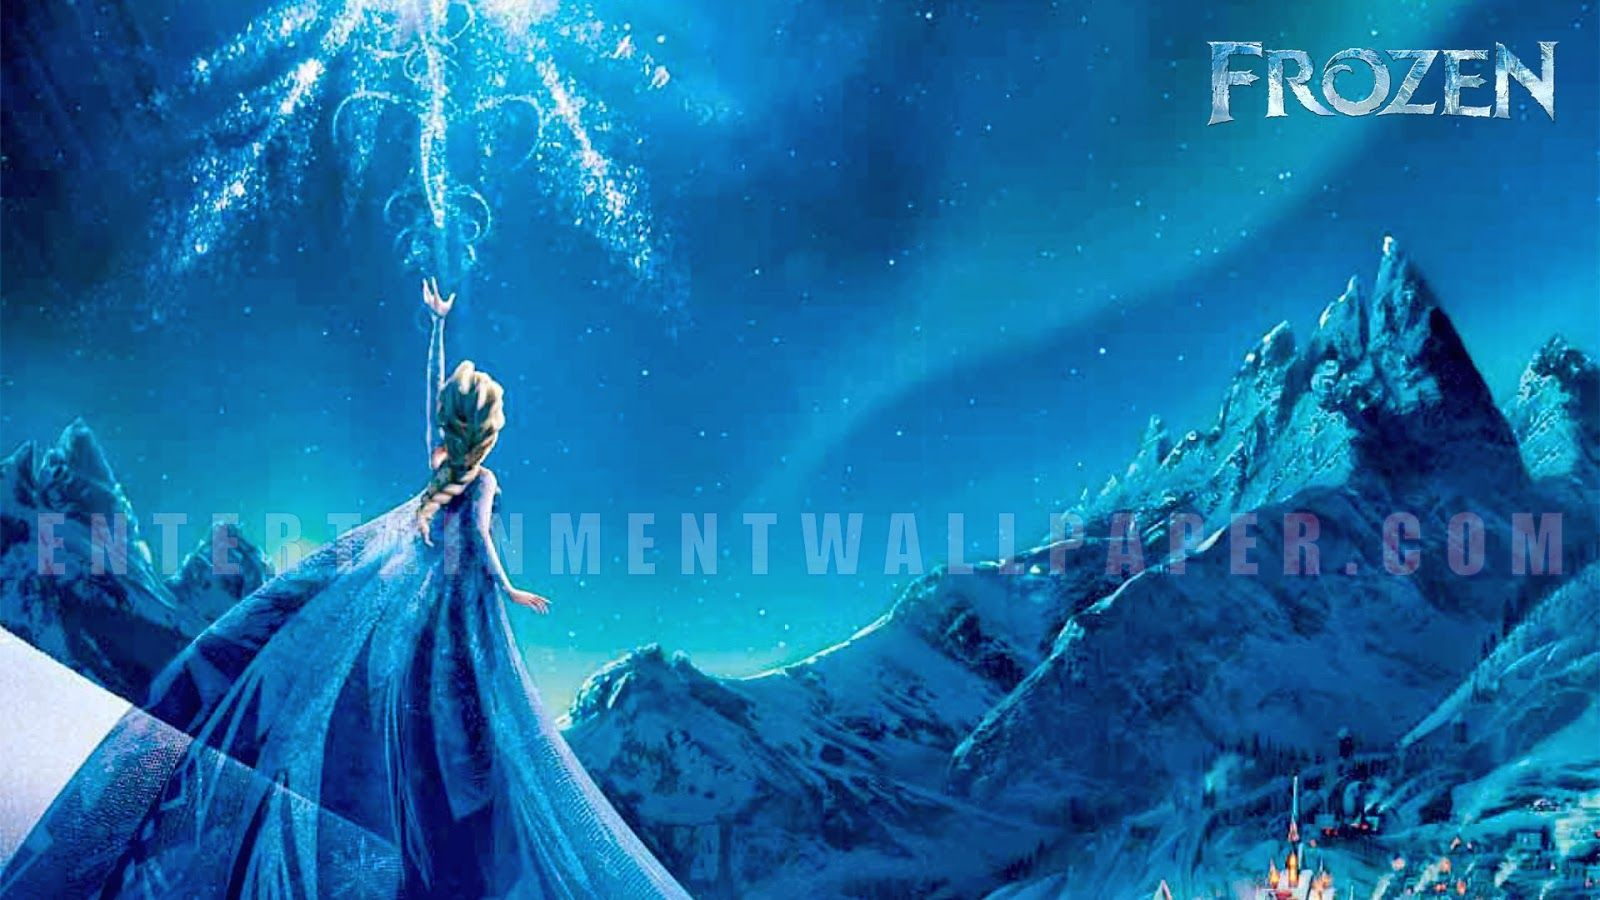 Frozen wallpaper cartoon wallpapers hd wallpapers - Frozen cartoon wallpaper ...